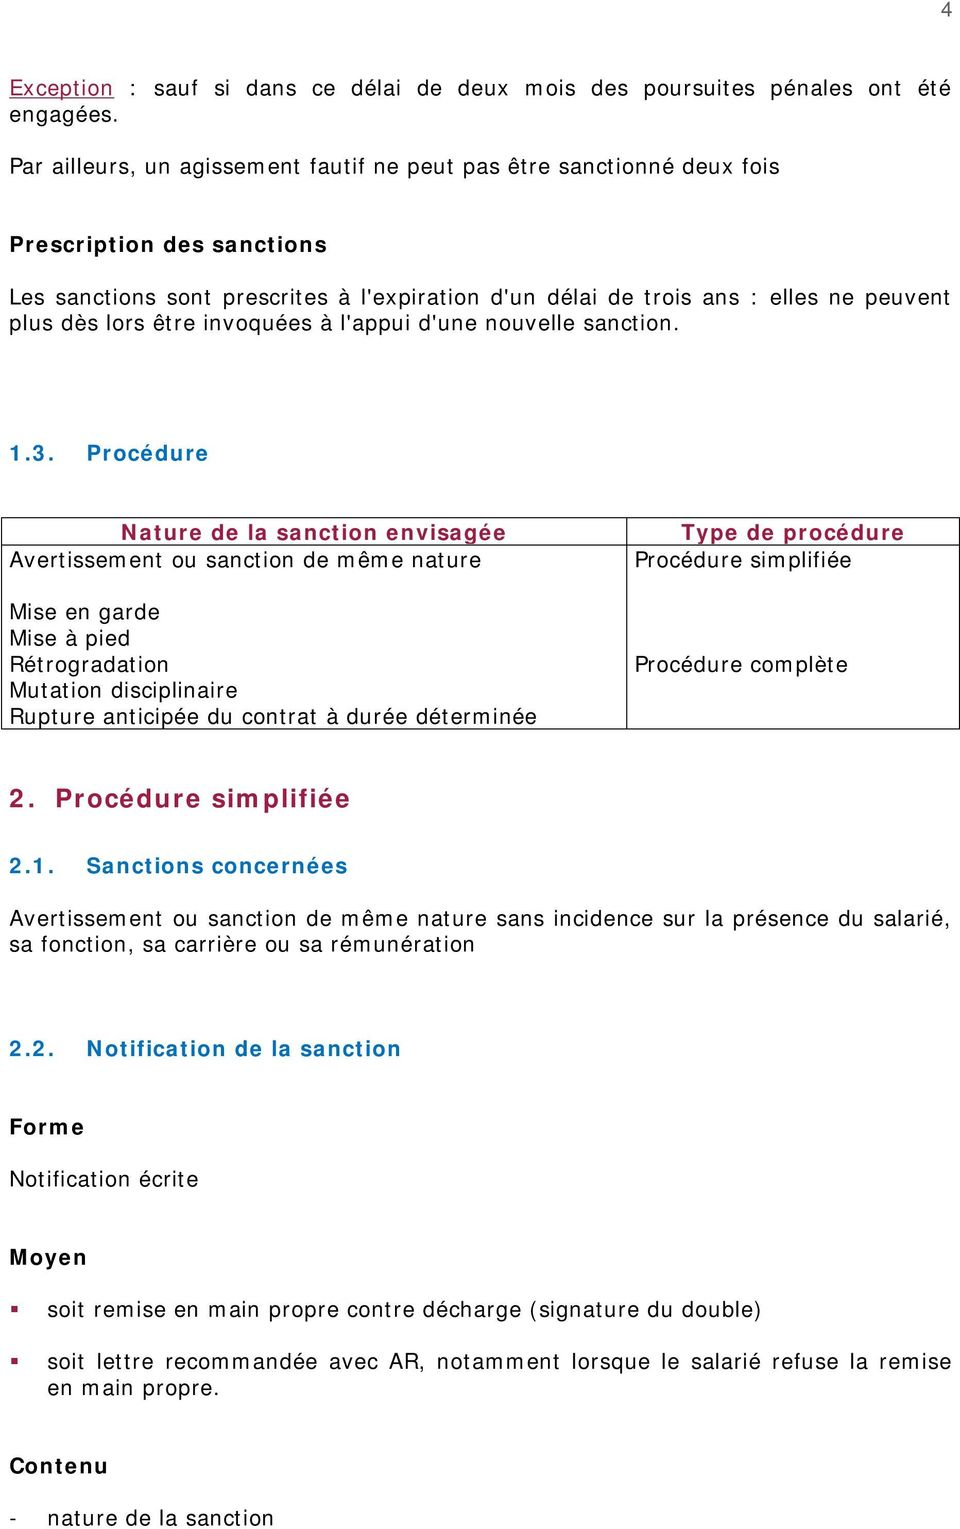 Procedures Disciplinaires Pdf